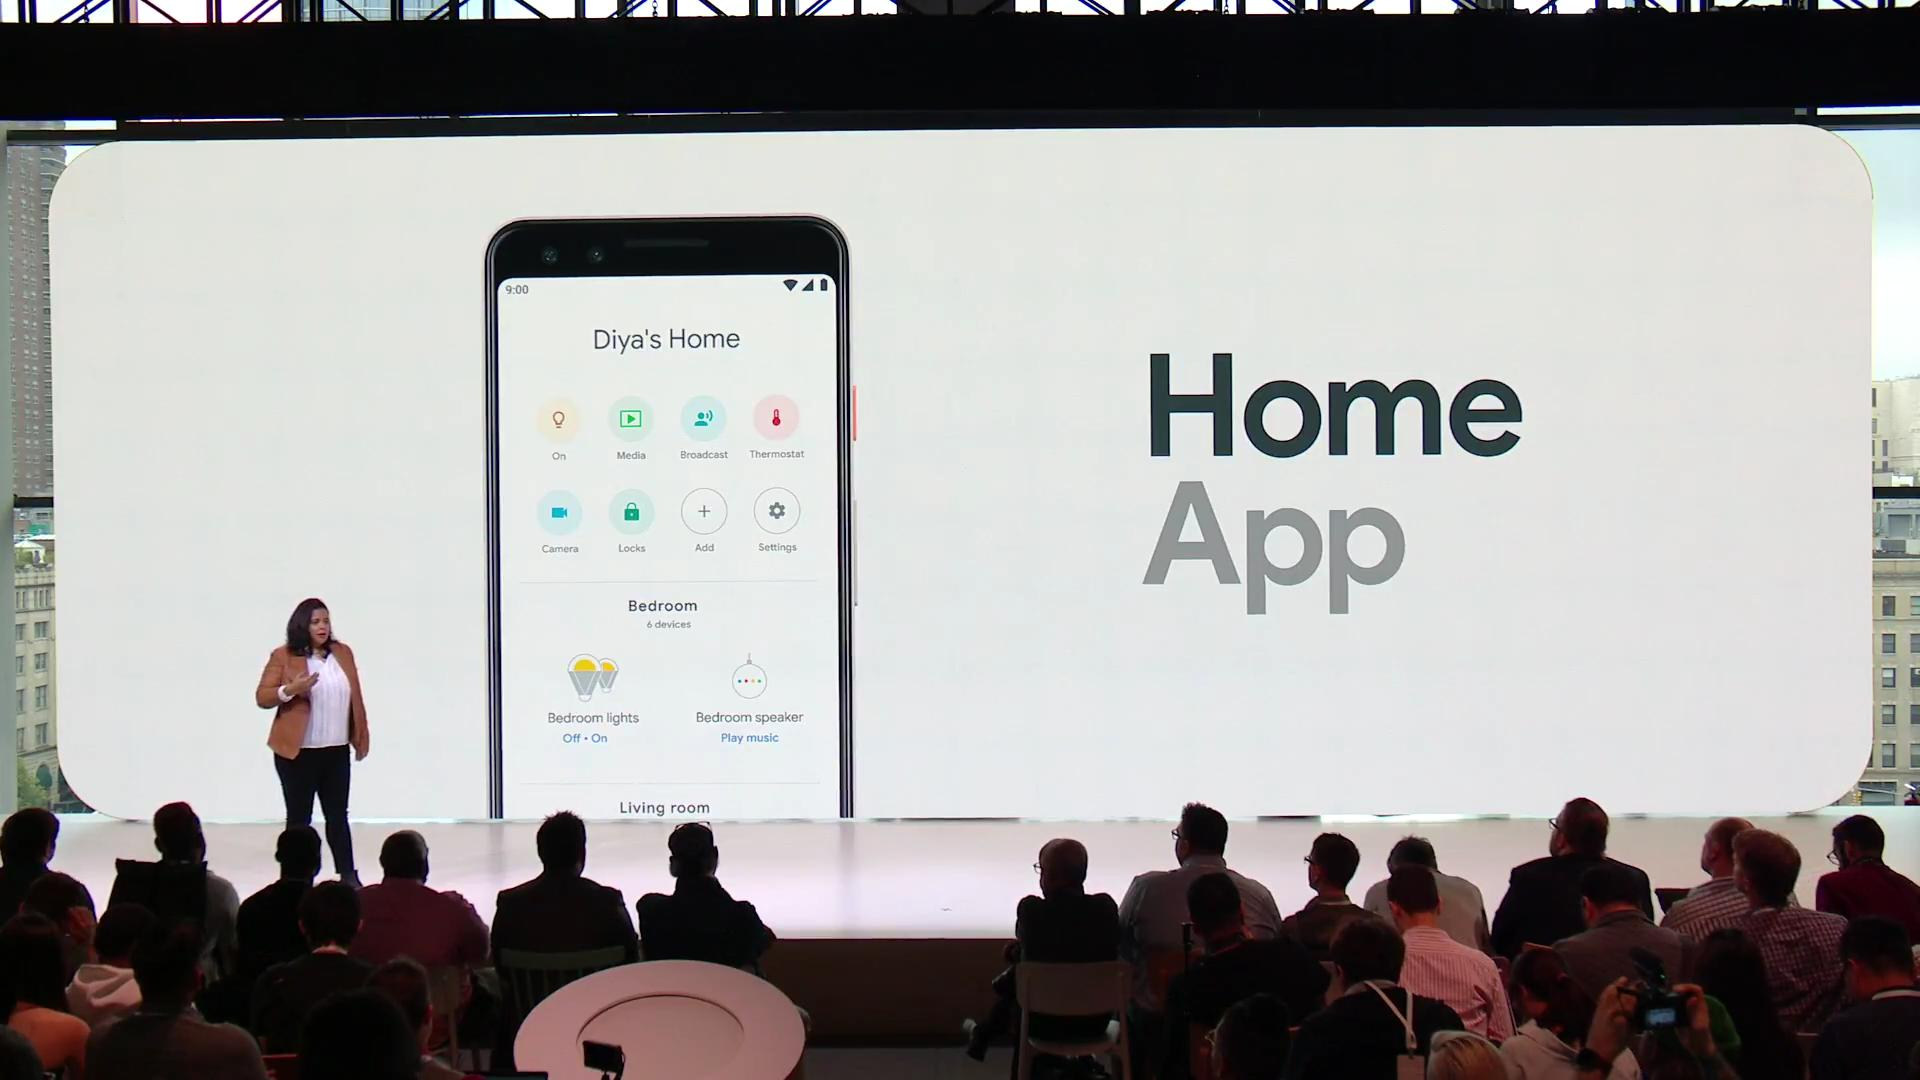 Google Home Hub is all about simplifying the smart home experience